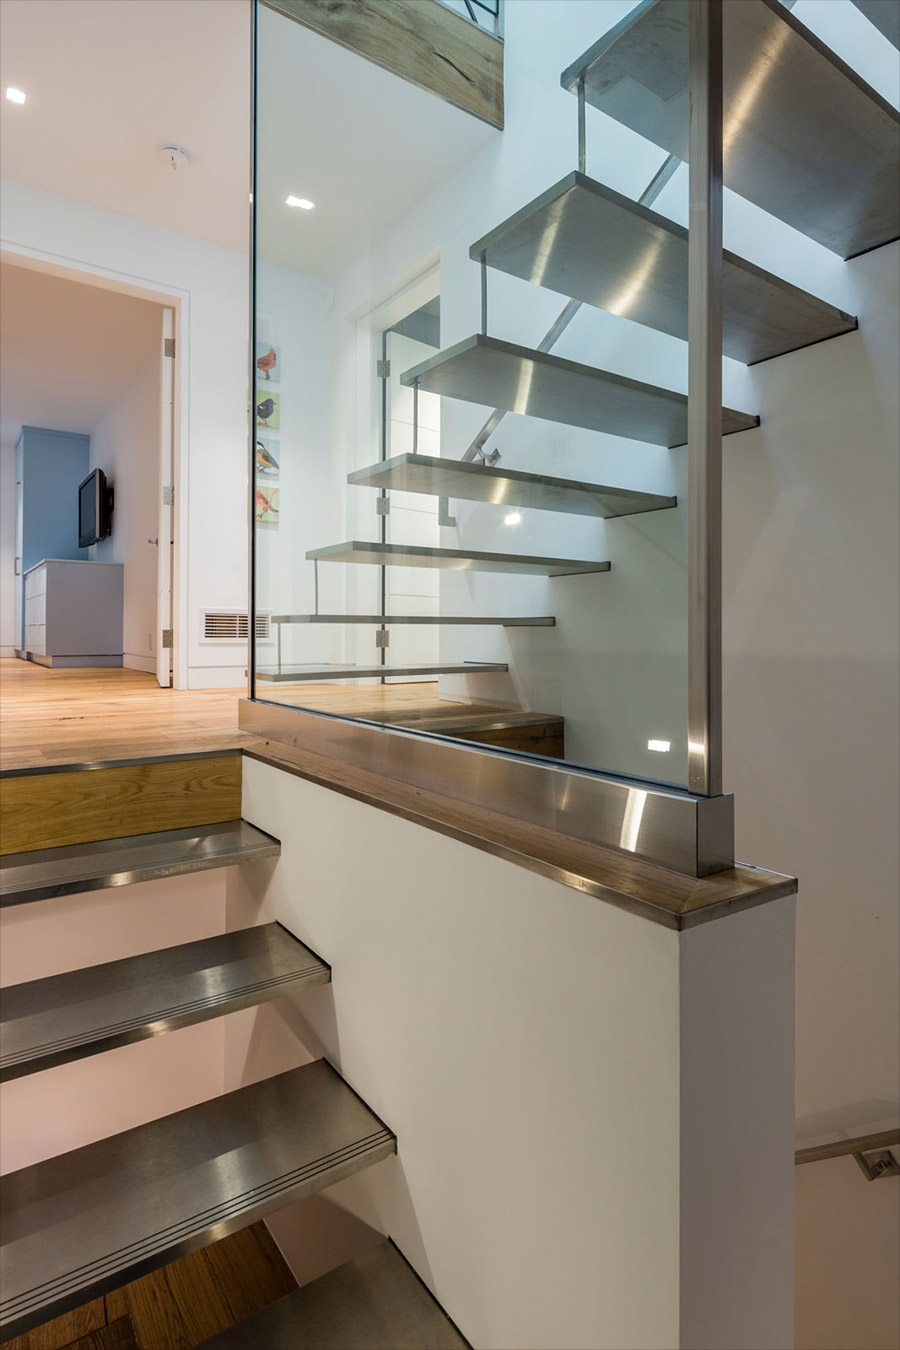 Open riser stainless steel stair with tempered glass guard